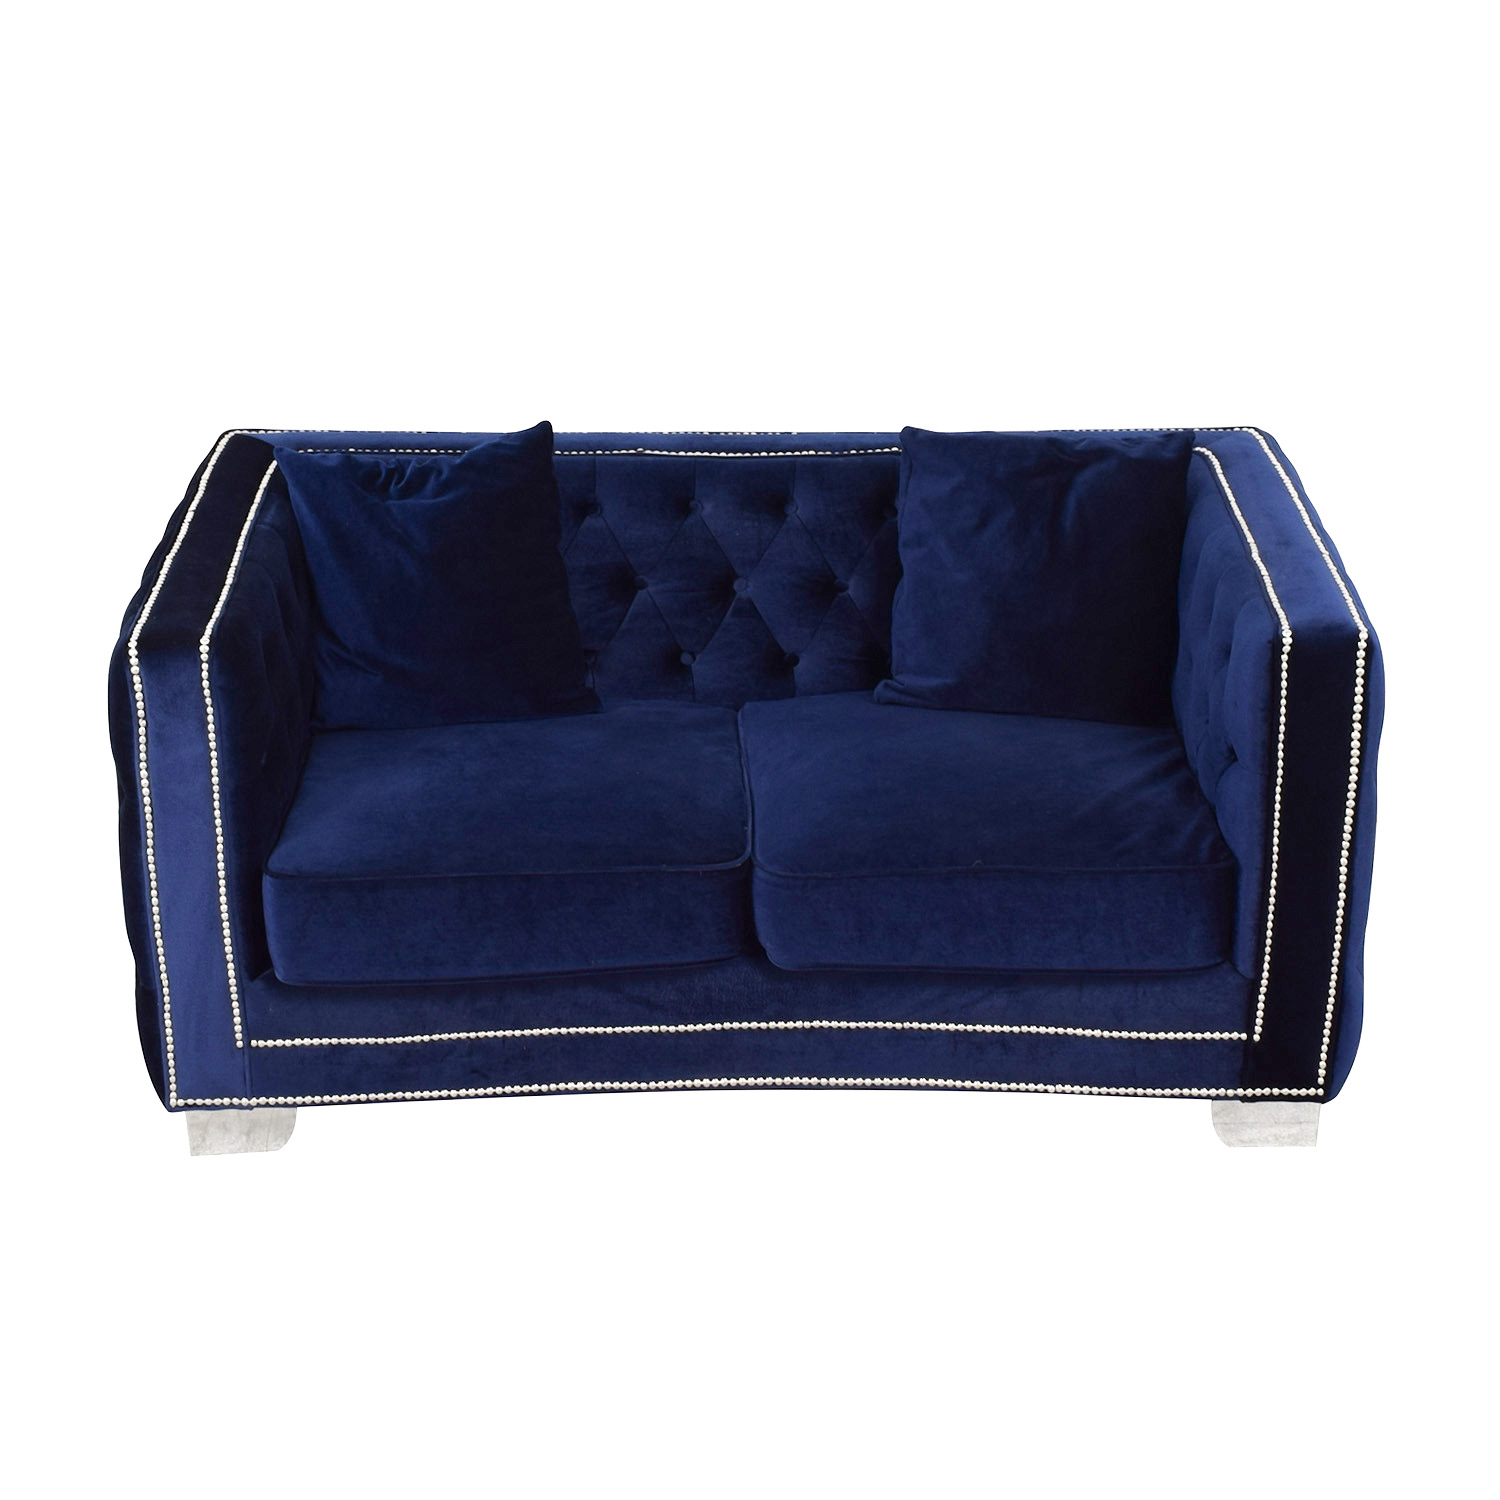 Tufted Nailhead Blue Two-Cushion Loveseat / Sofas